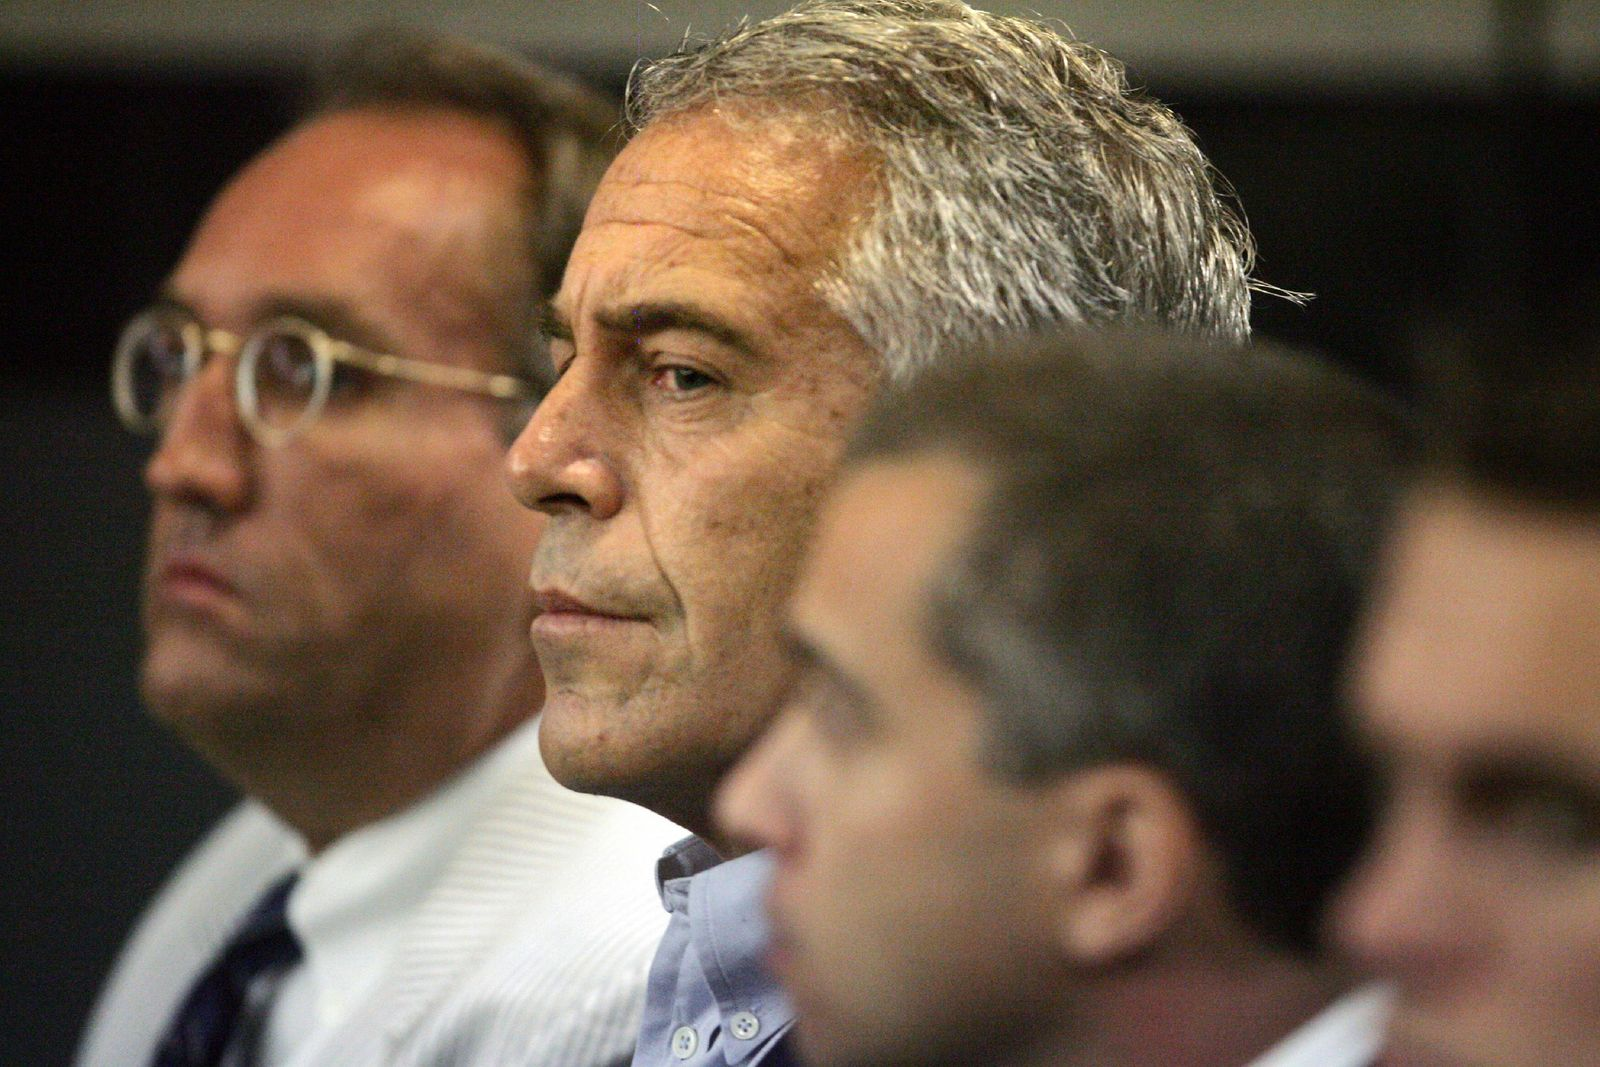 FILE - In this July 30, 2008, file photo, Jeffrey Epstein, center, appears in court in West Palm Beach, Fla. (Uma Sanghvi/Palm Beach Post via AP, File)